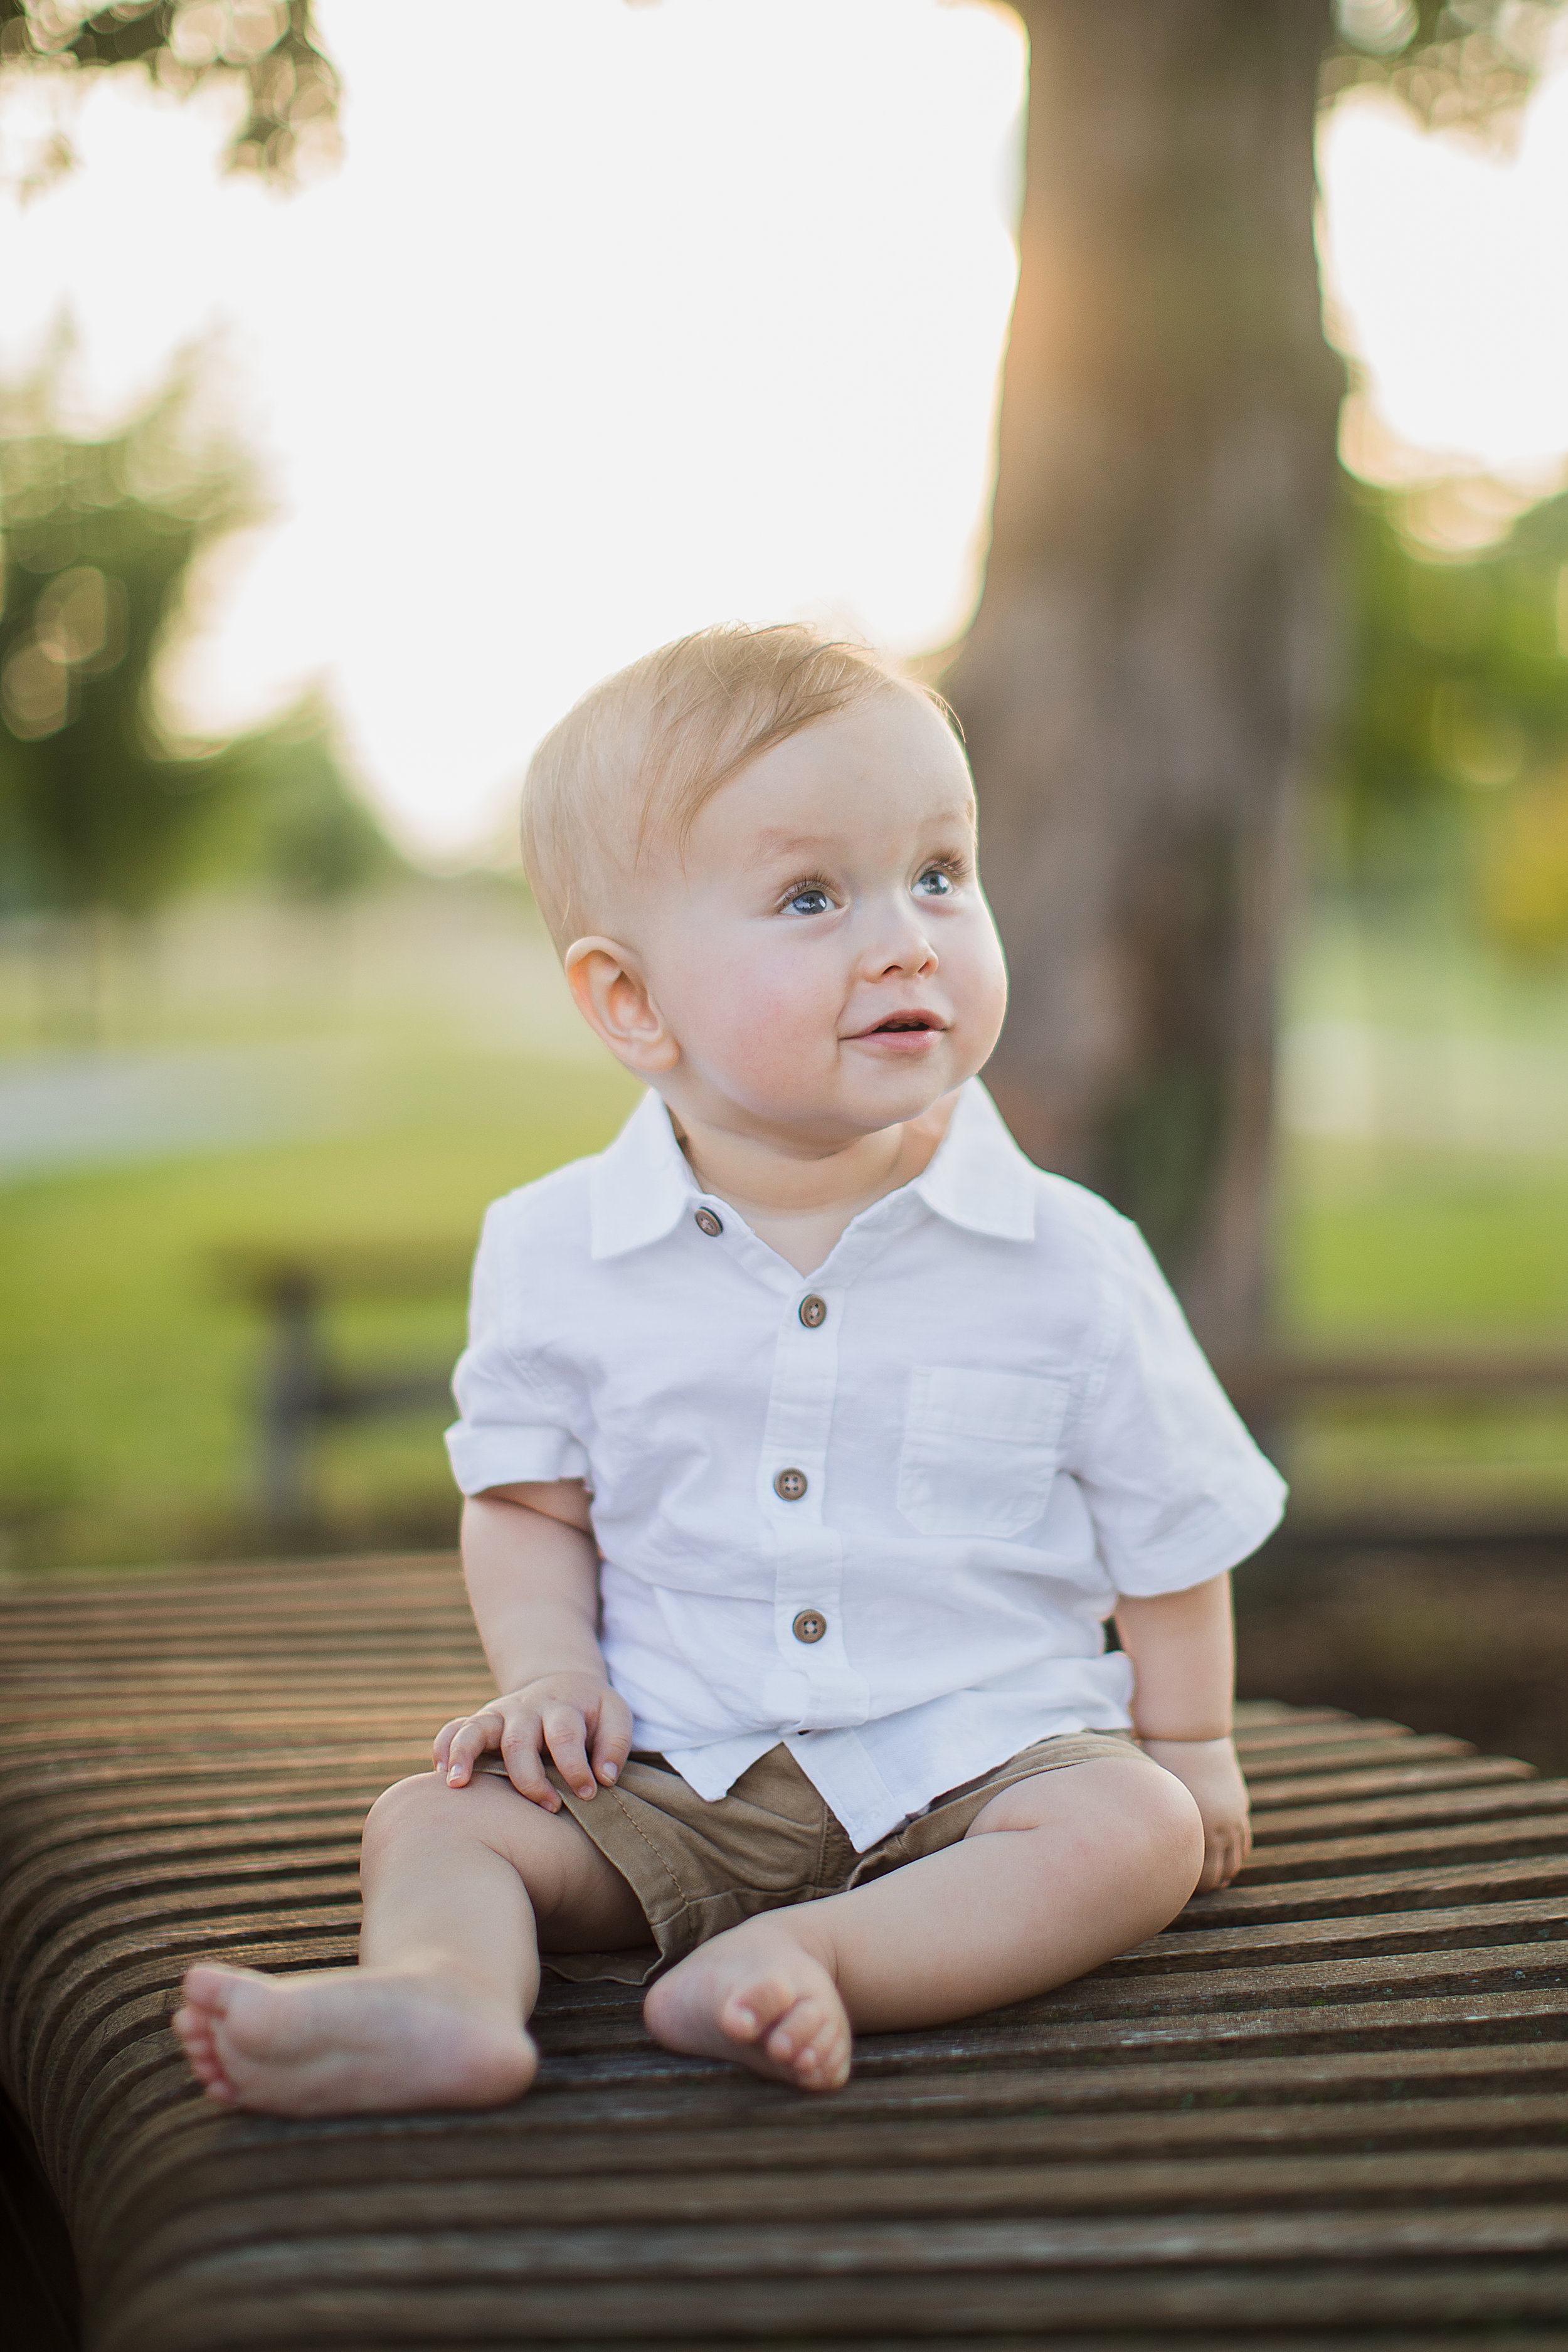 Amy Cook Photography   Owen was diagnosed with Cerebral Palsy at 6 months and began therapy right after he left the NICU.